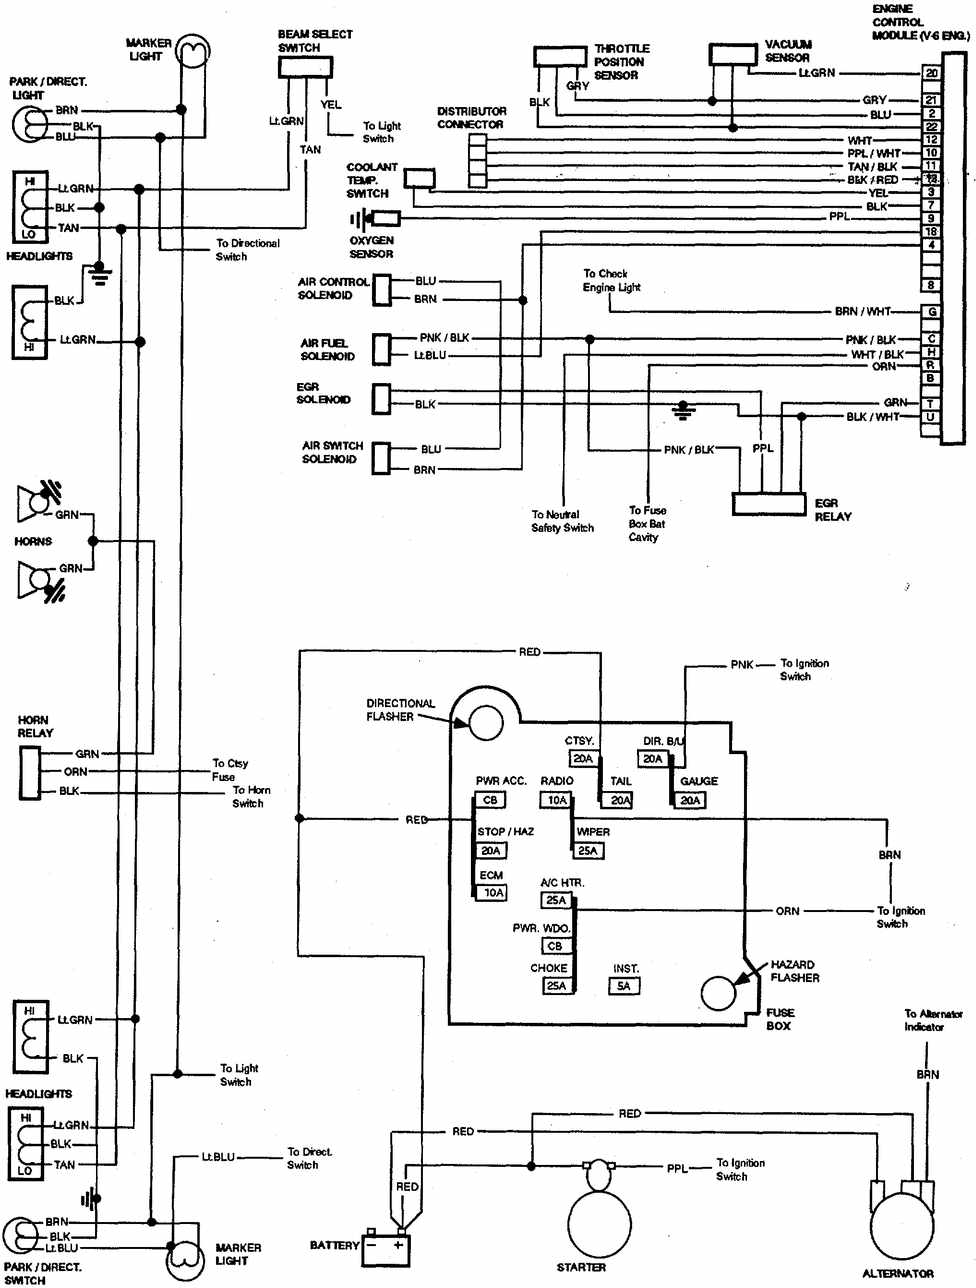 wire harness diagram 1998 chevrolet silverado